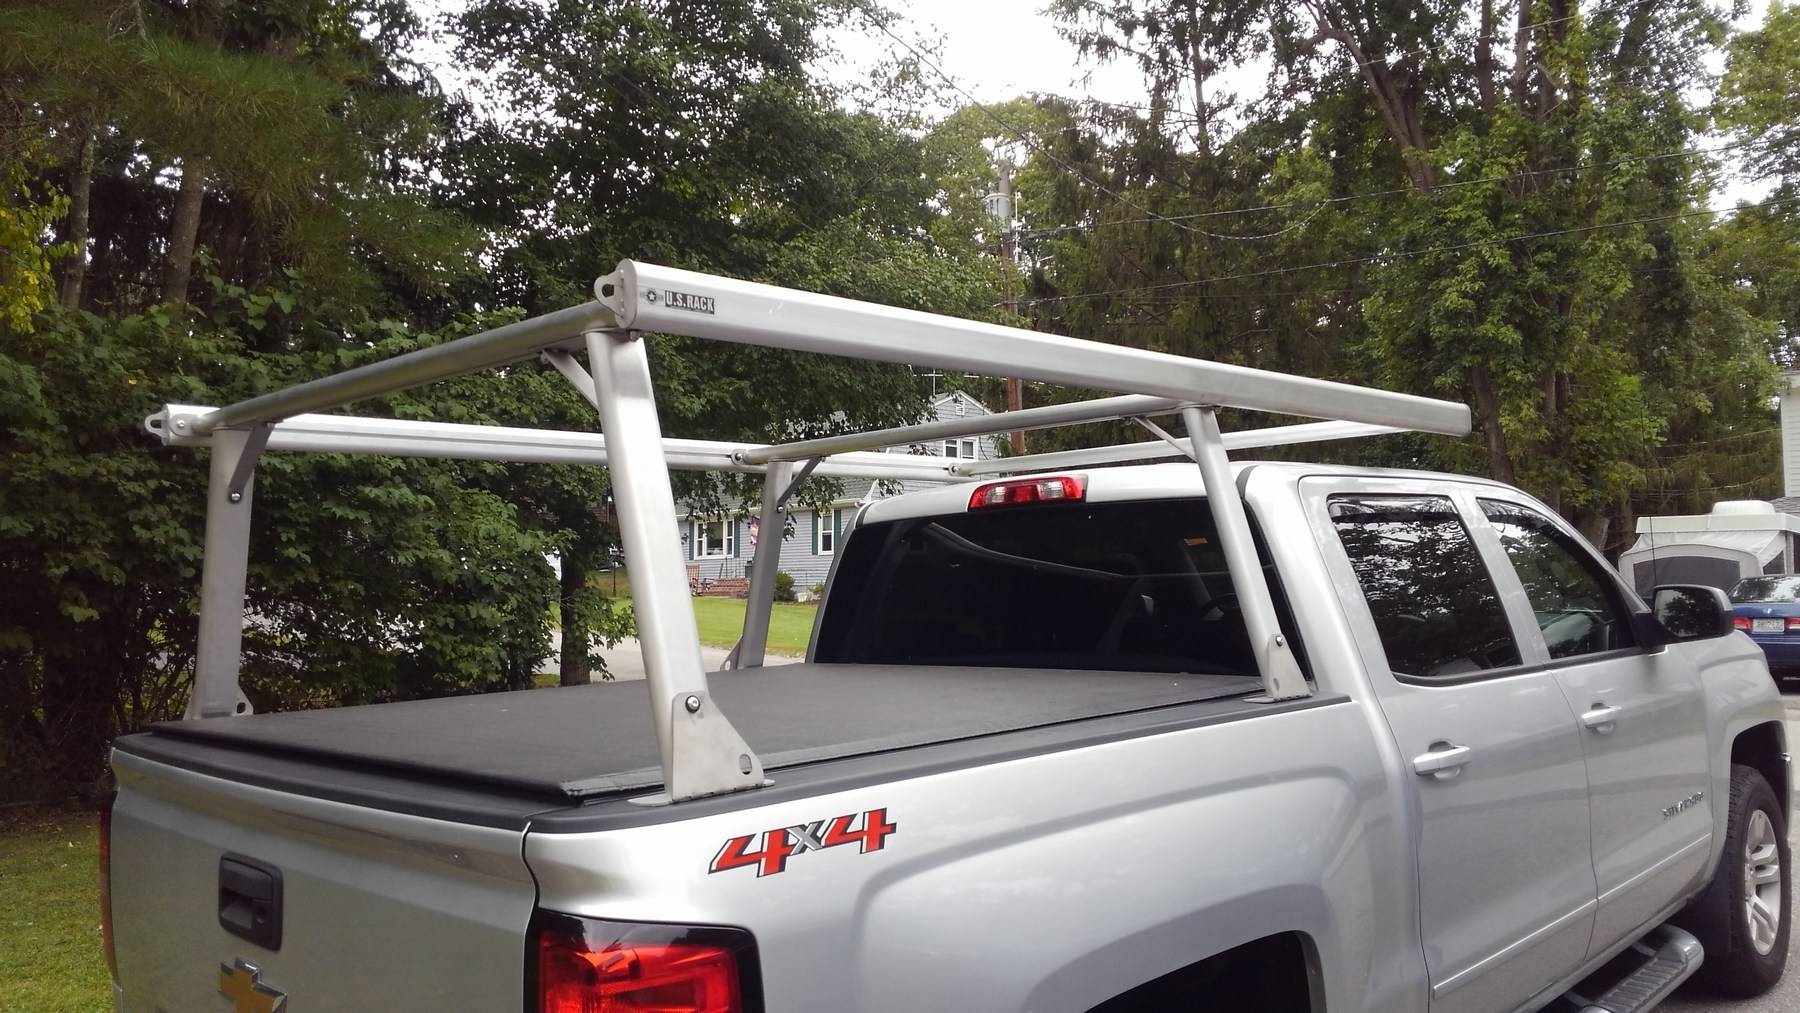 Galleon Truck Rack for Cabs Over 24 Inches, Standard Legs, Brushed Frame With Bead Blasted Base - PN #82610310